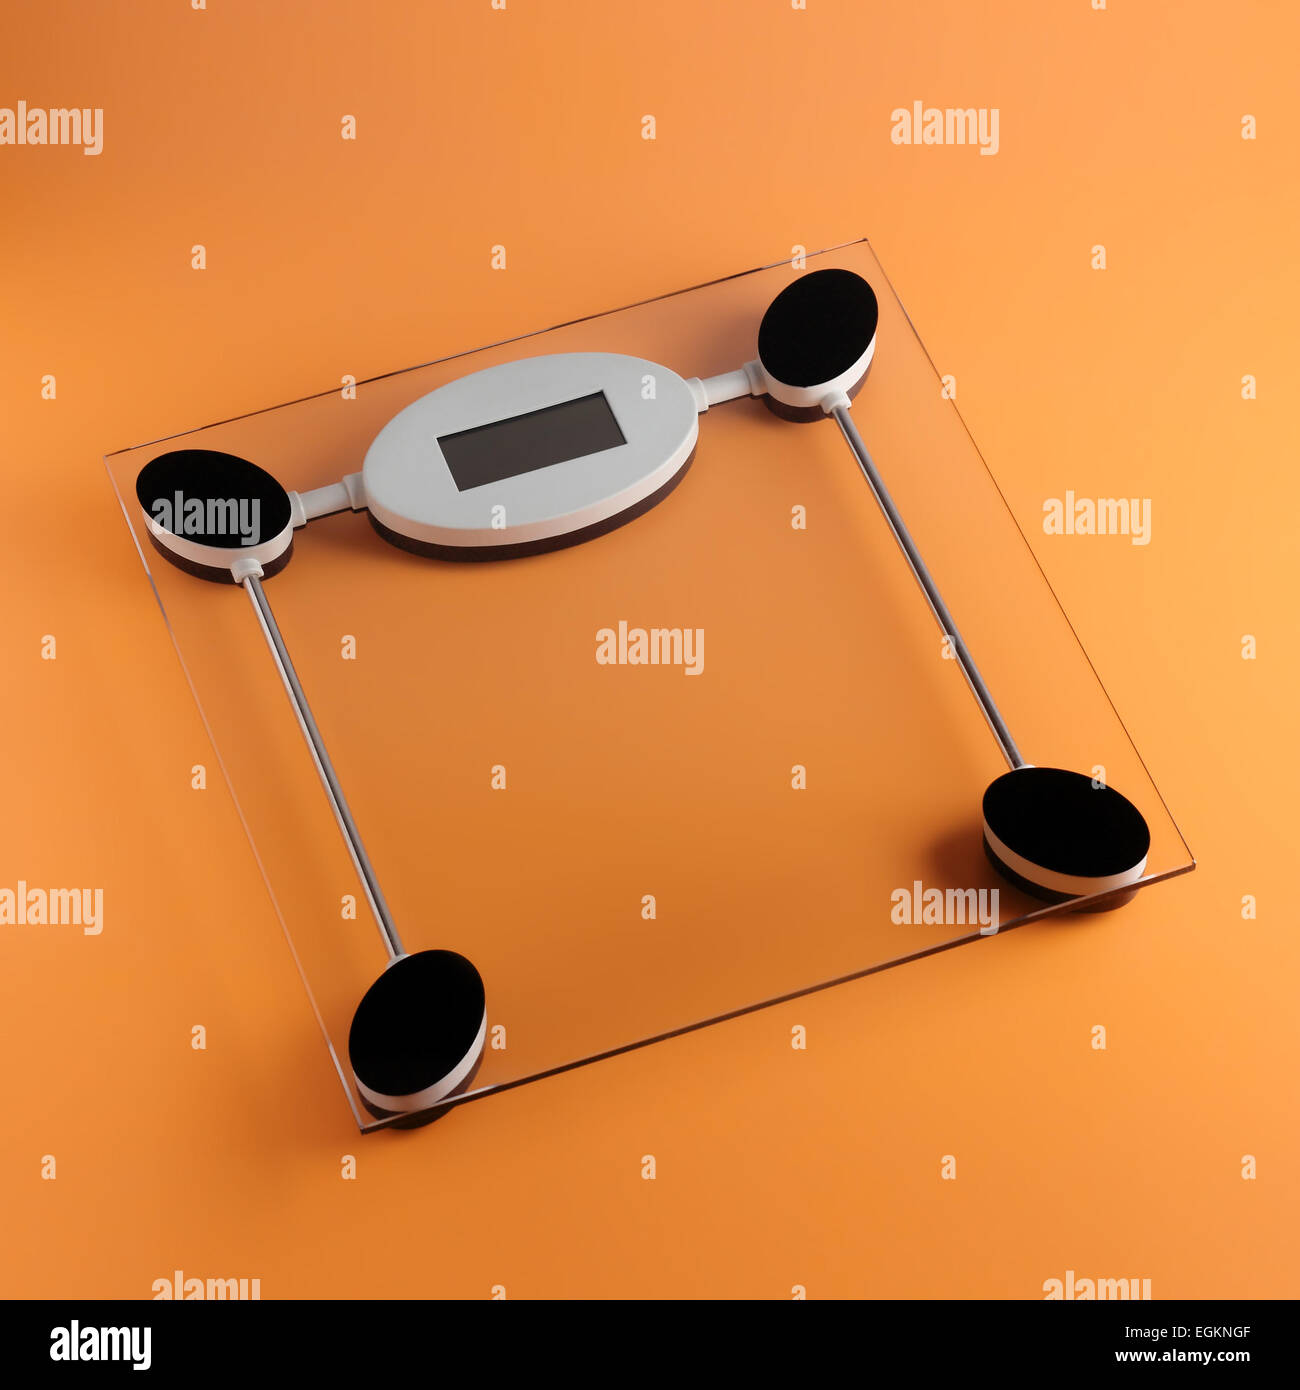 Bathroom digital scales from transparent glass on an orange background. - Stock Image